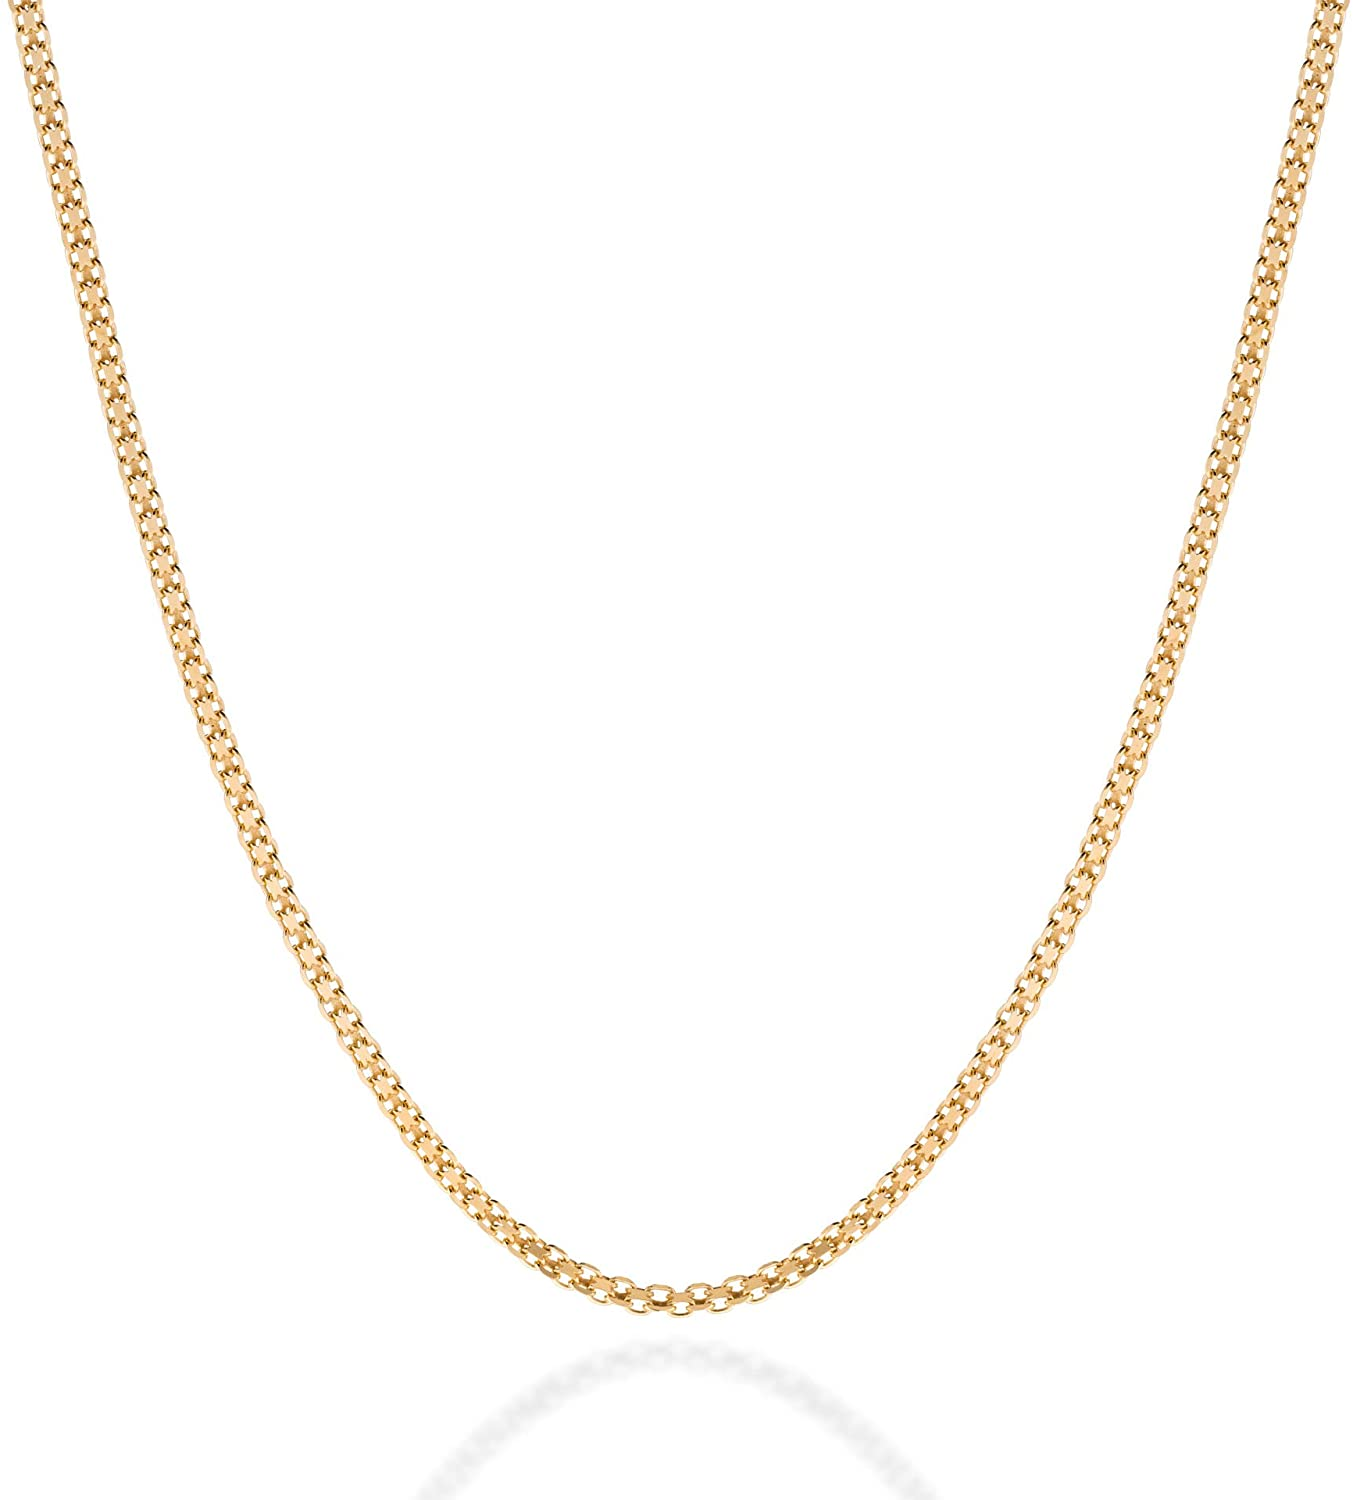 QUADRI for Men Women - 16 18 20 inch Certified 18K Gold over Sterling Silver Necklace Chain Bismark Mesh - 2.5mm - Made in Italy